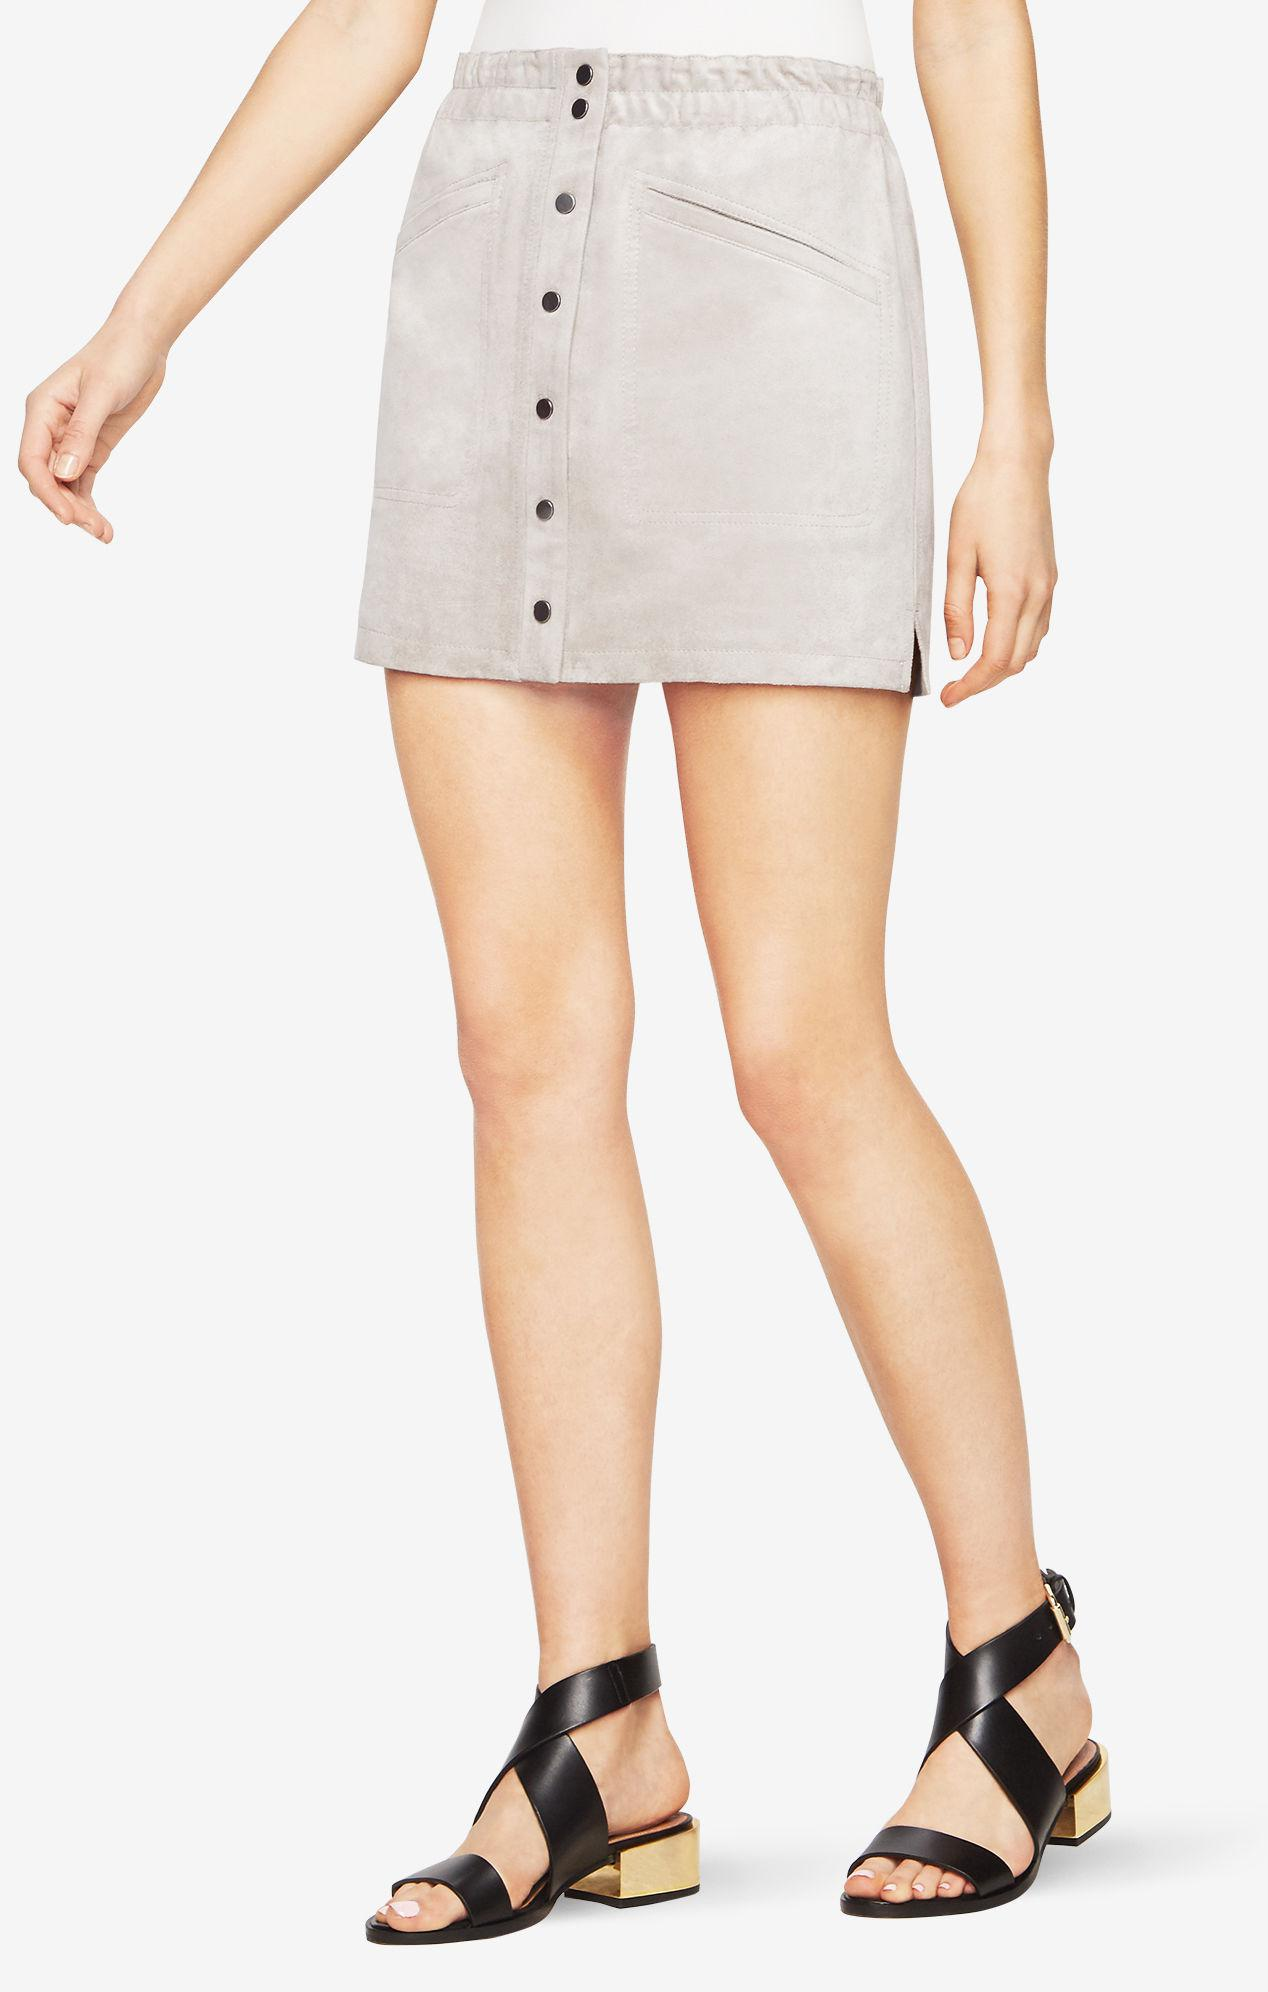 8f355c7748 Gallery. Previously sold at: BCBGMAXAZRIA · Women's Bodycon Skirts ...